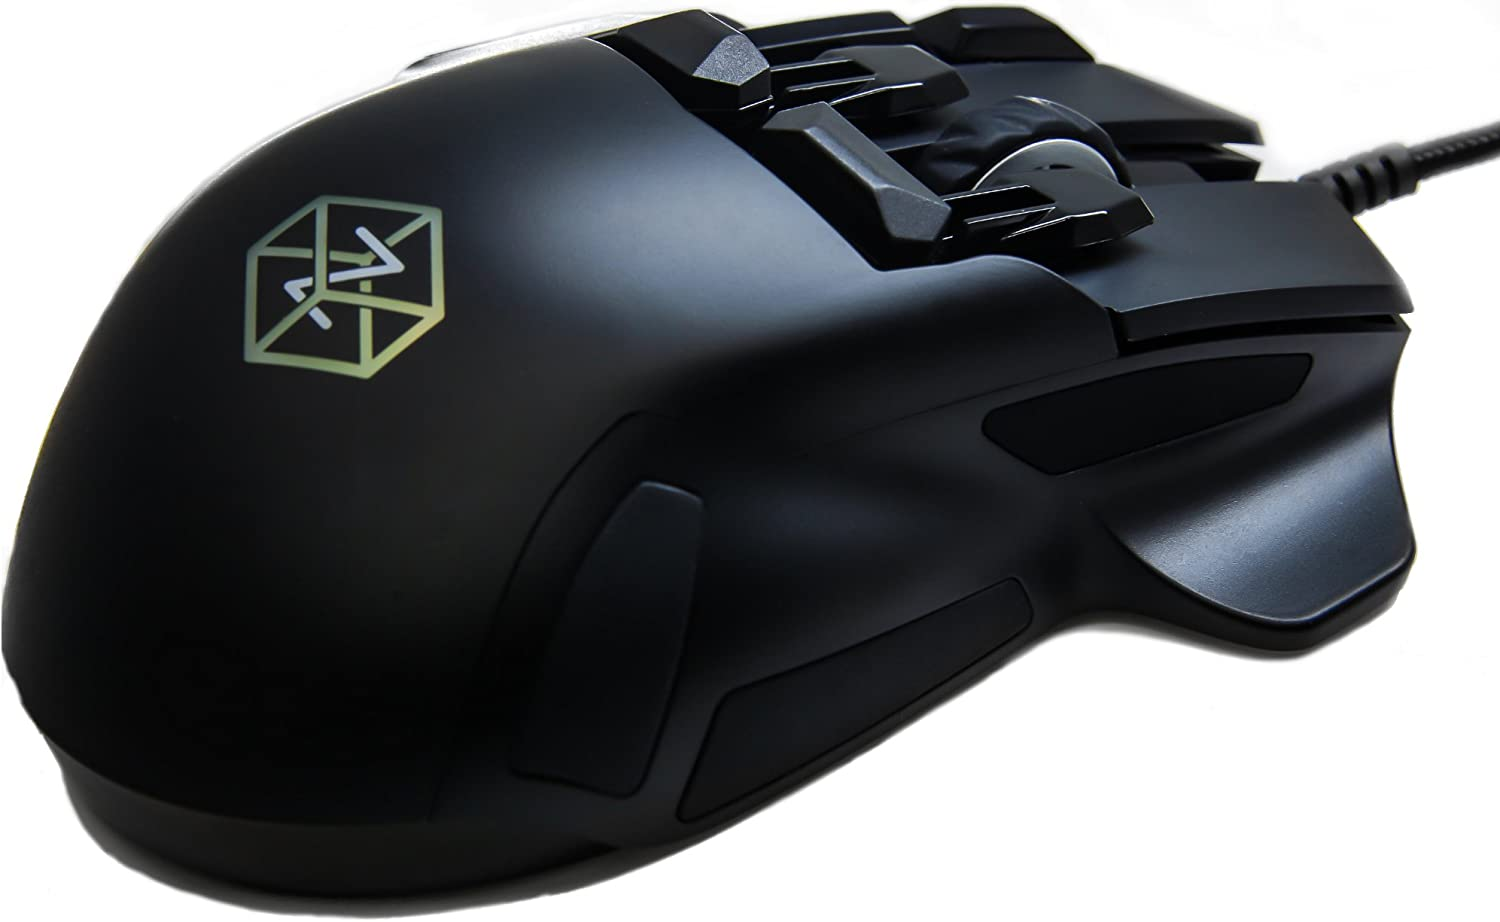 Swiftpoint Z Gaming Mouse, 13 Programmable Buttons, 5 with Pressure Sensors, Analog Joystick Control for FPS Peeking and Flying, 12K DPI, OLED RGB MMO